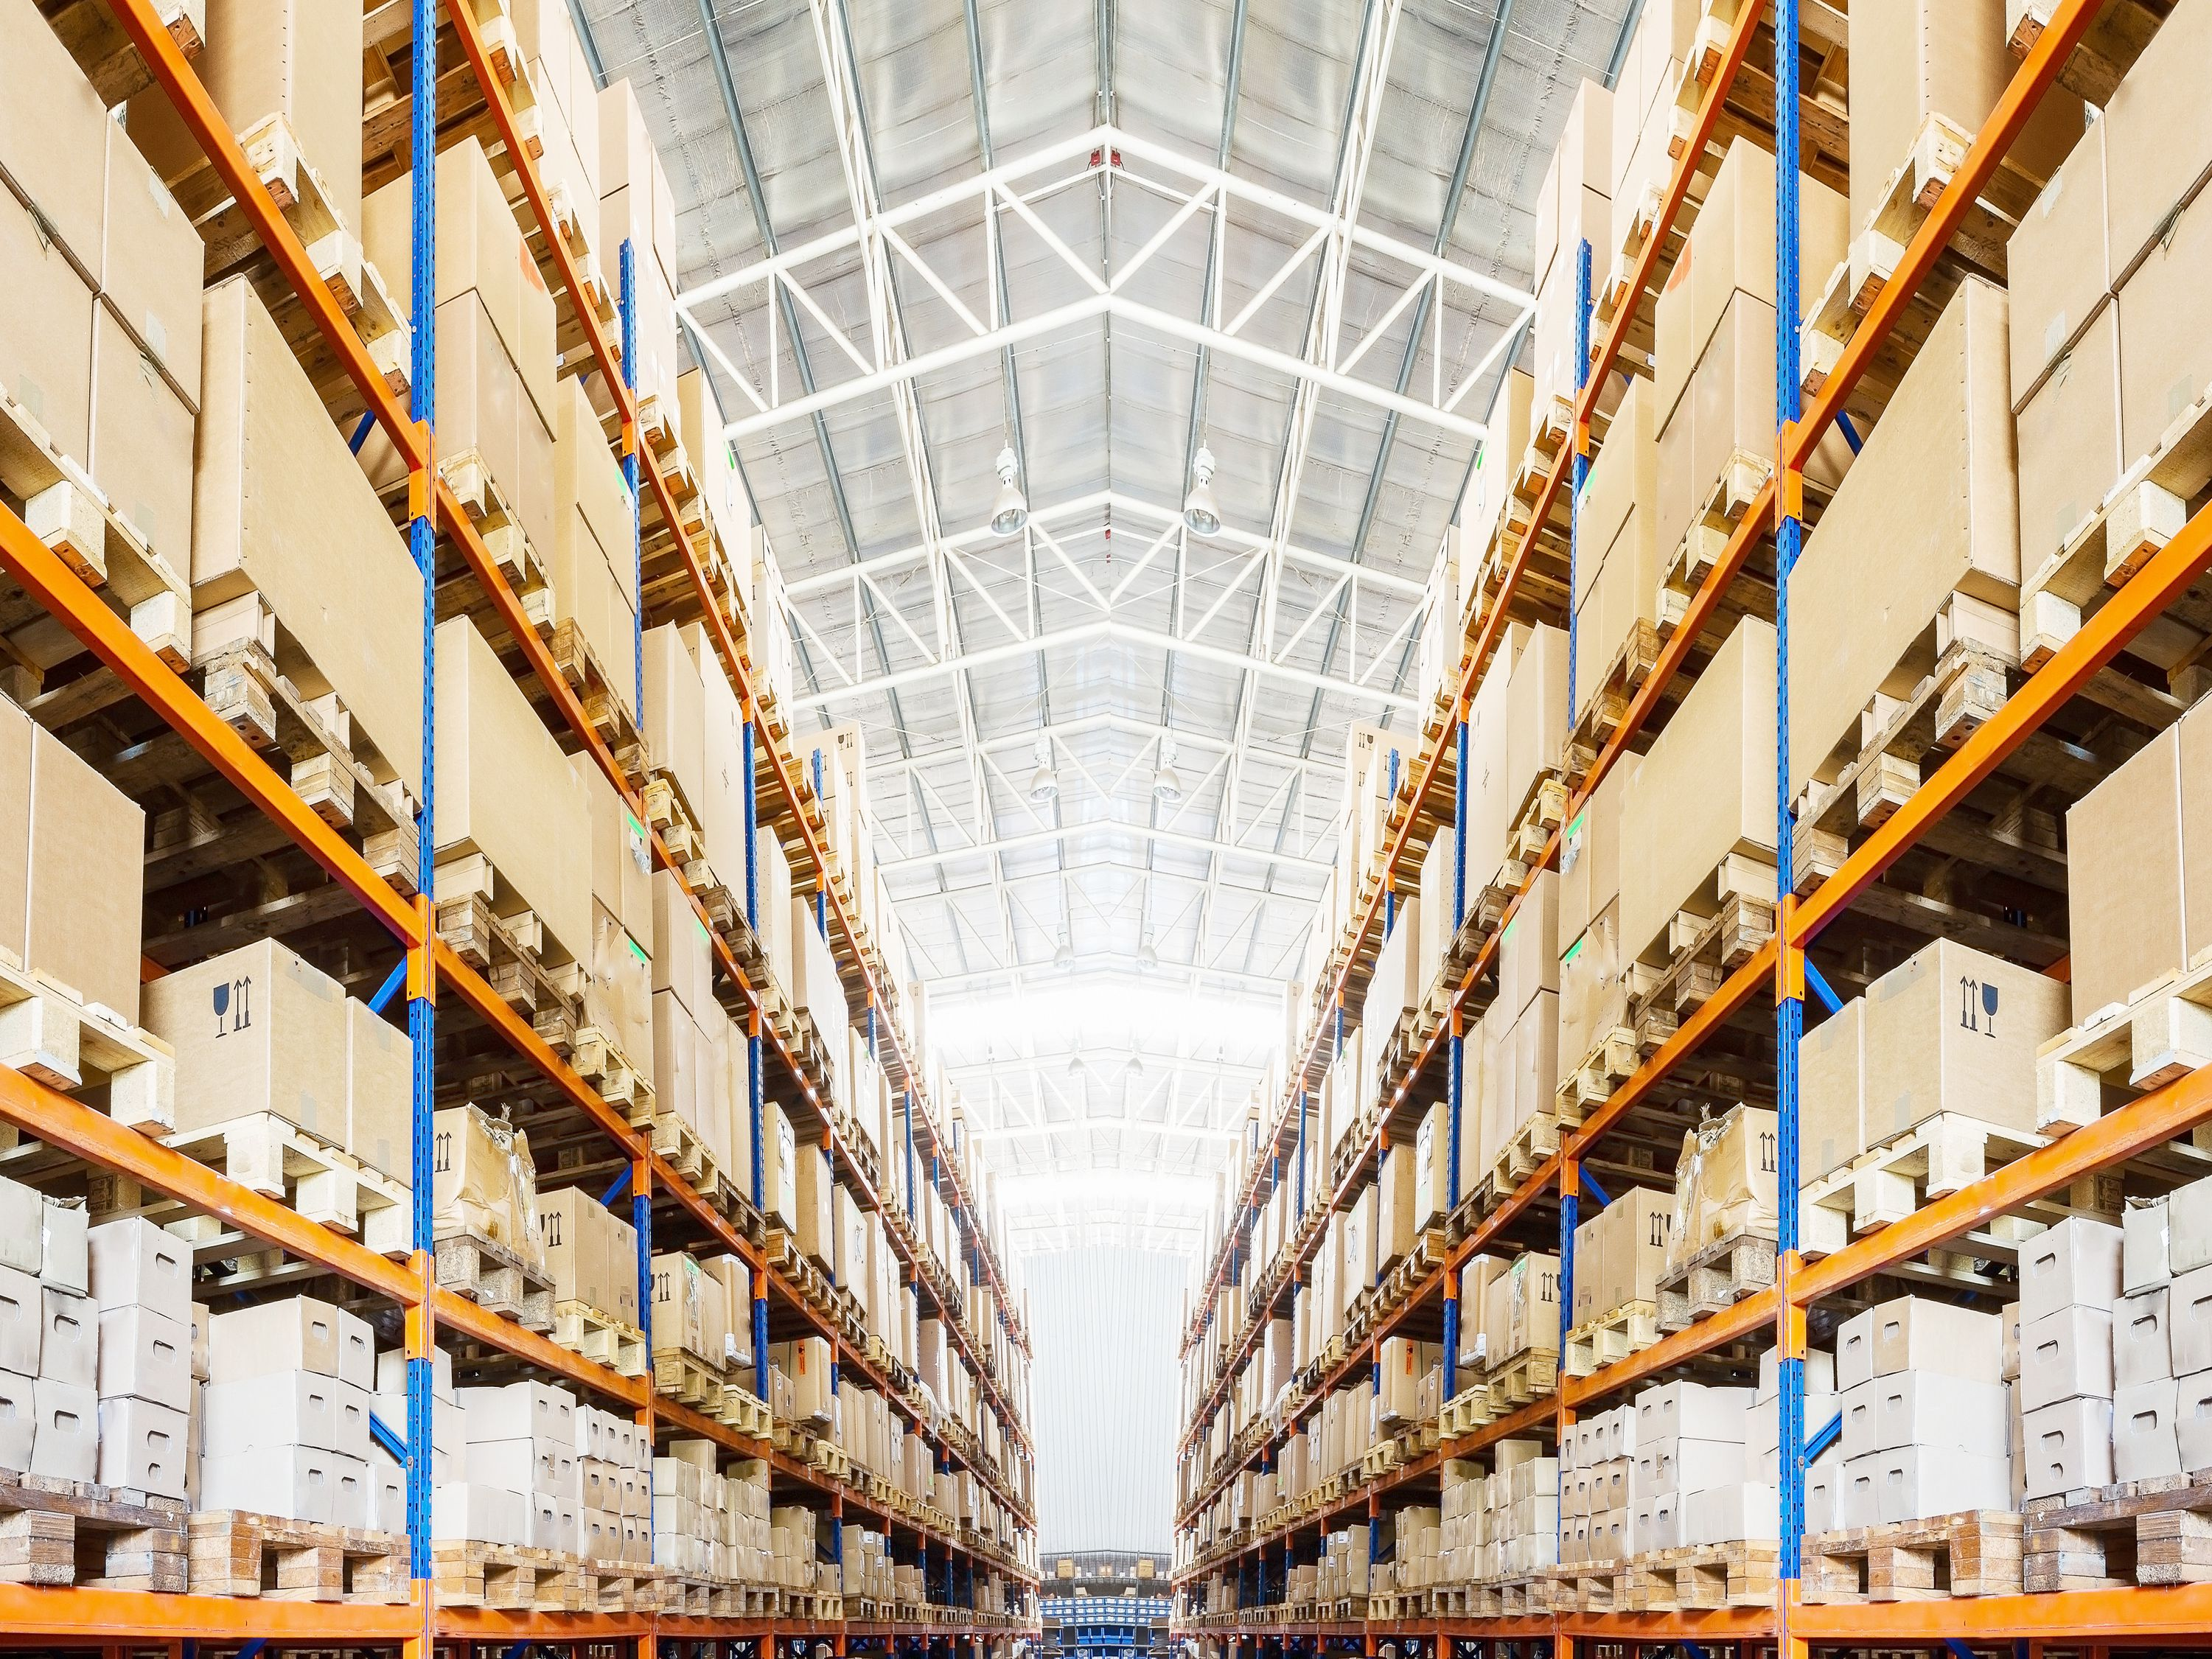 Implementing a Warehouse Management System (WMS)